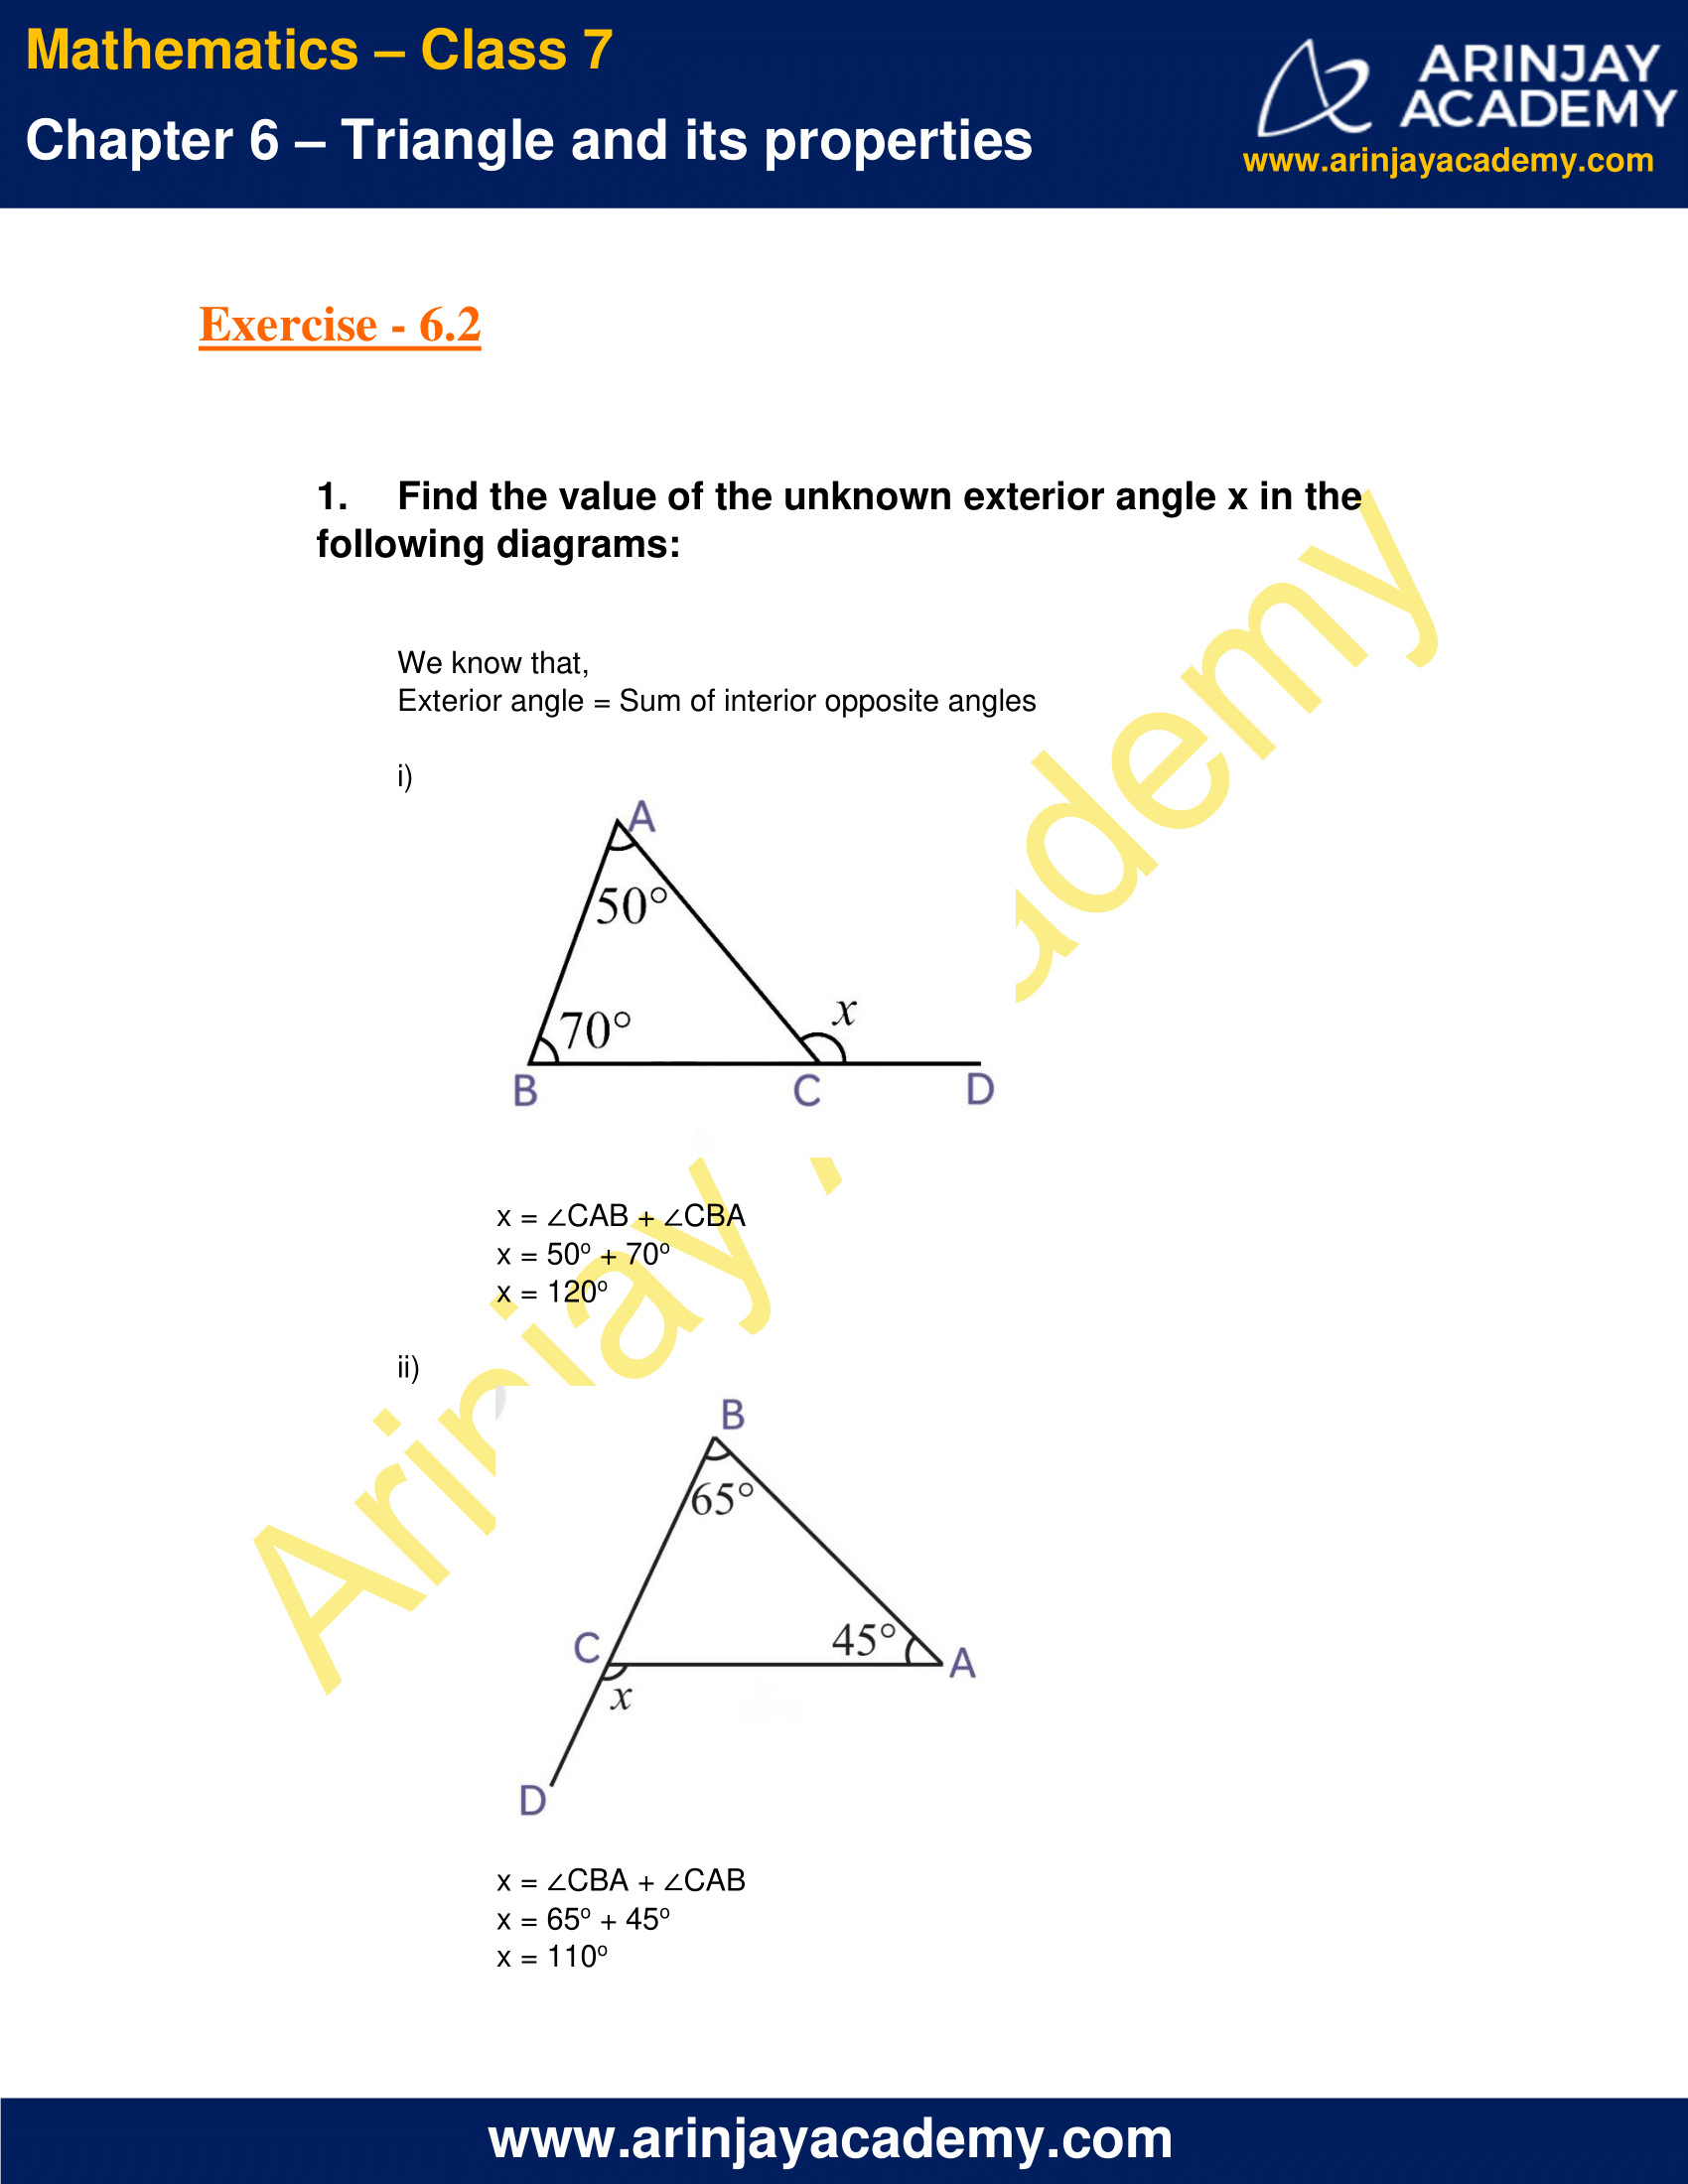 NCERT Solutions for Class 7 Maths Chapter 6 Exercise 6.2 image 1